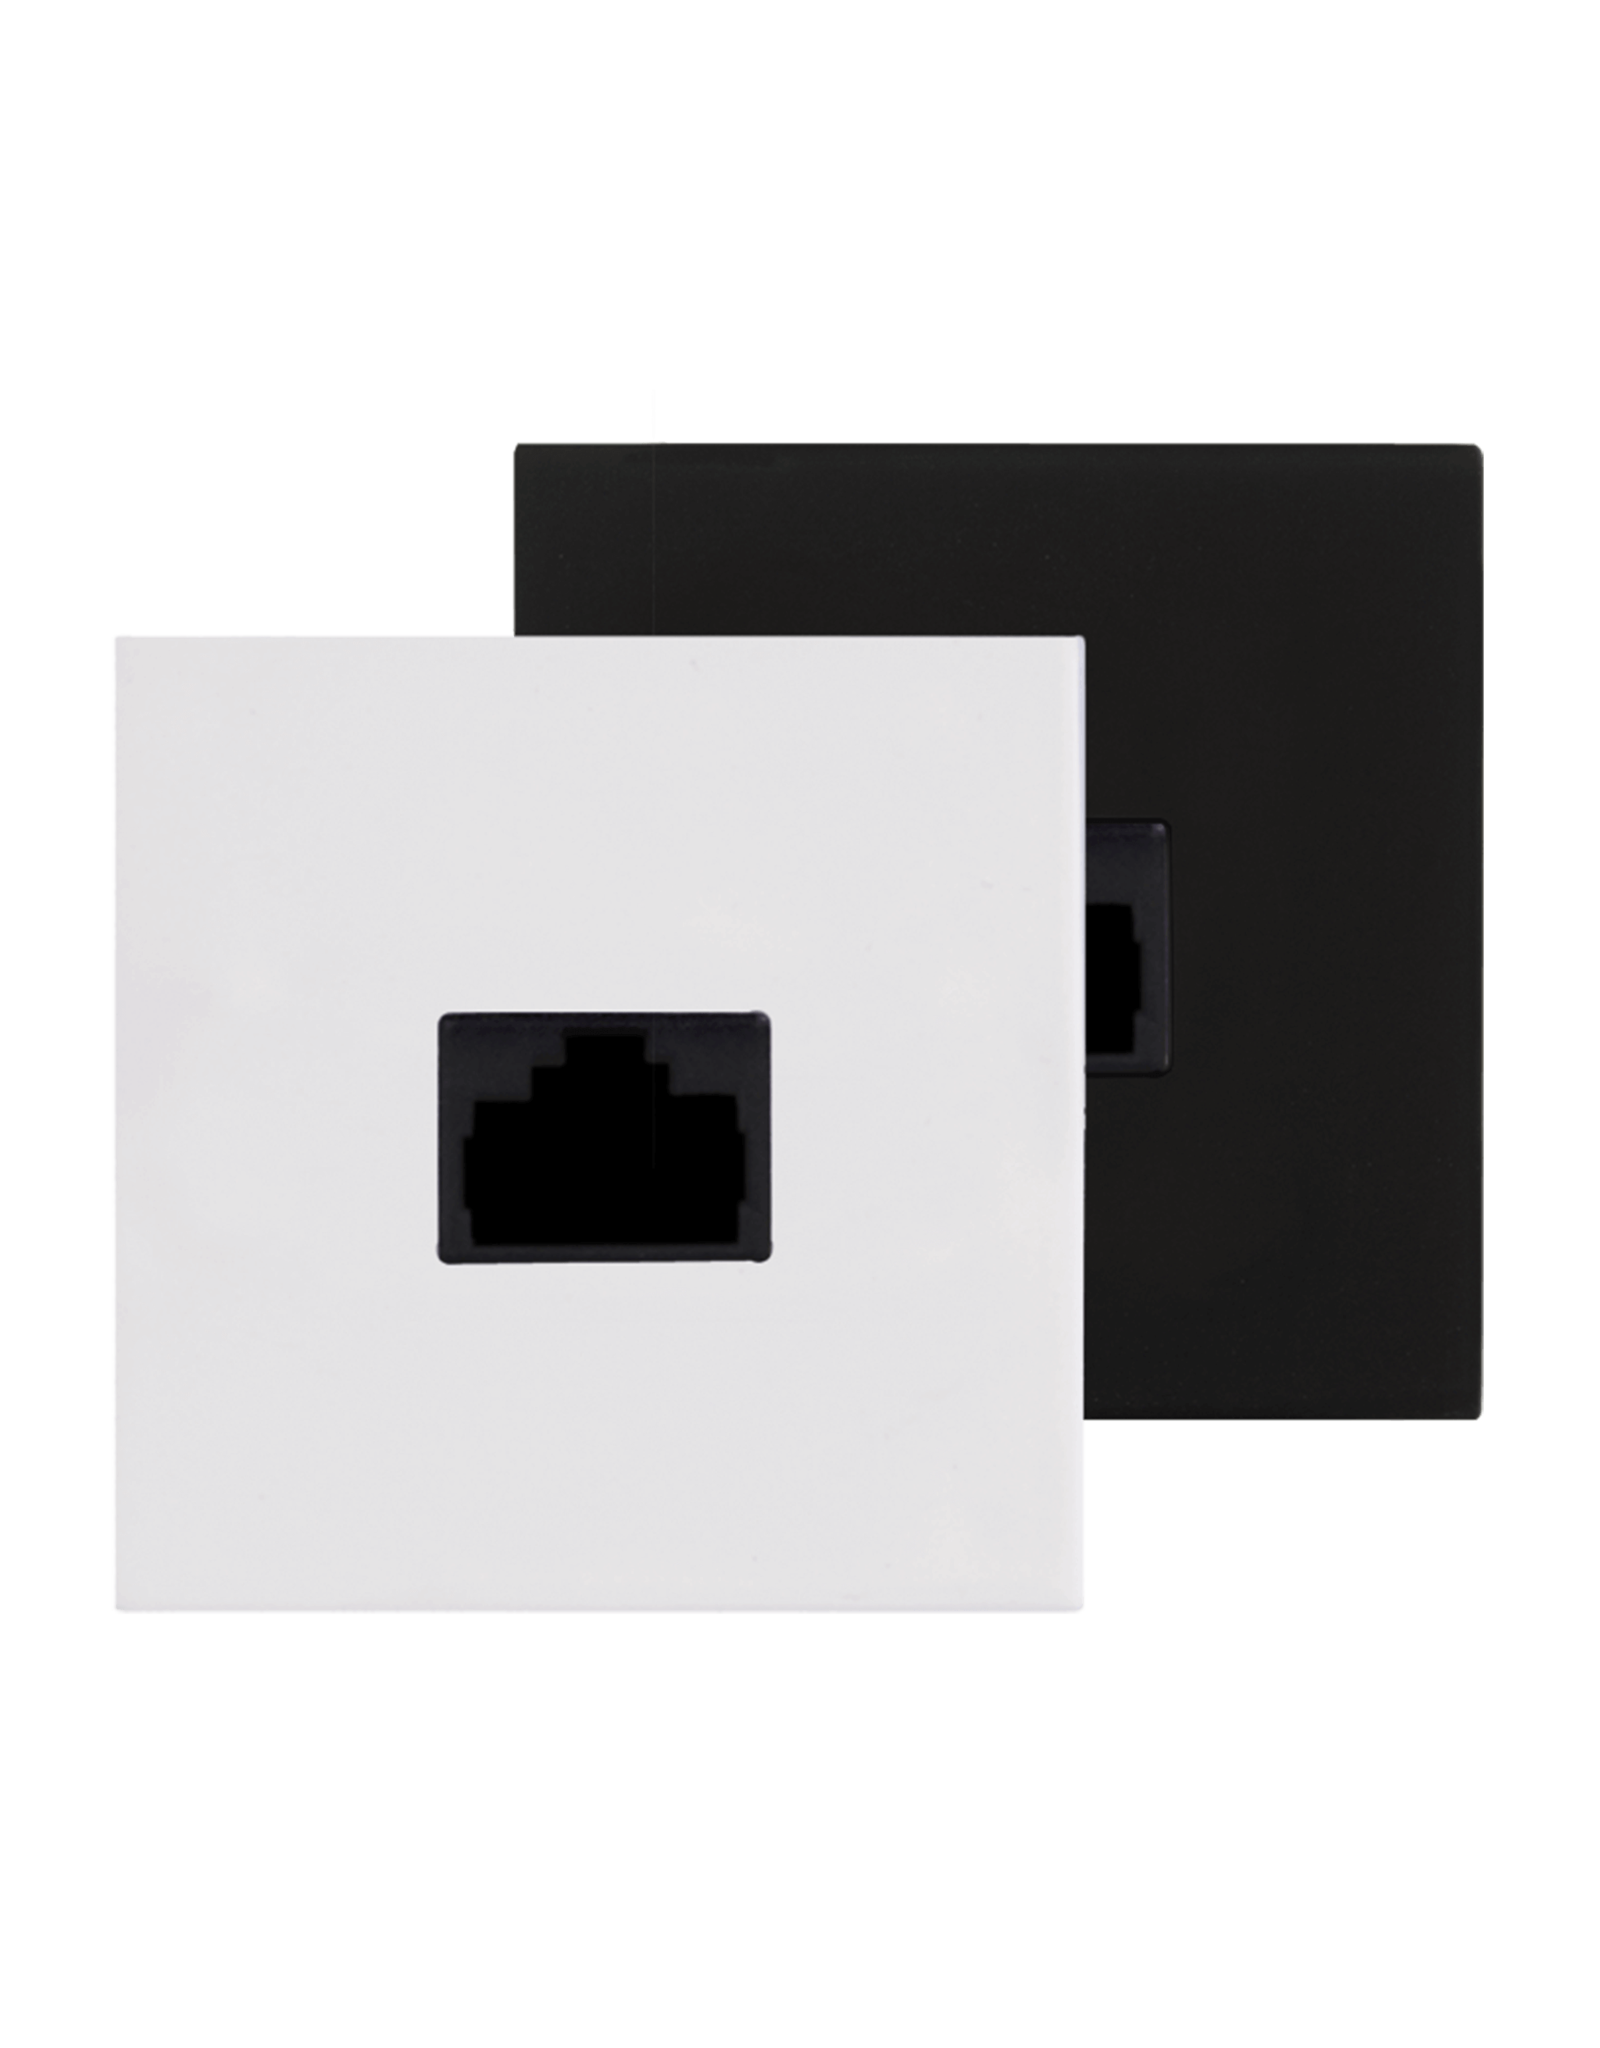 Audac Connection plate RJ45 repeater 45 x 45 mm Black version